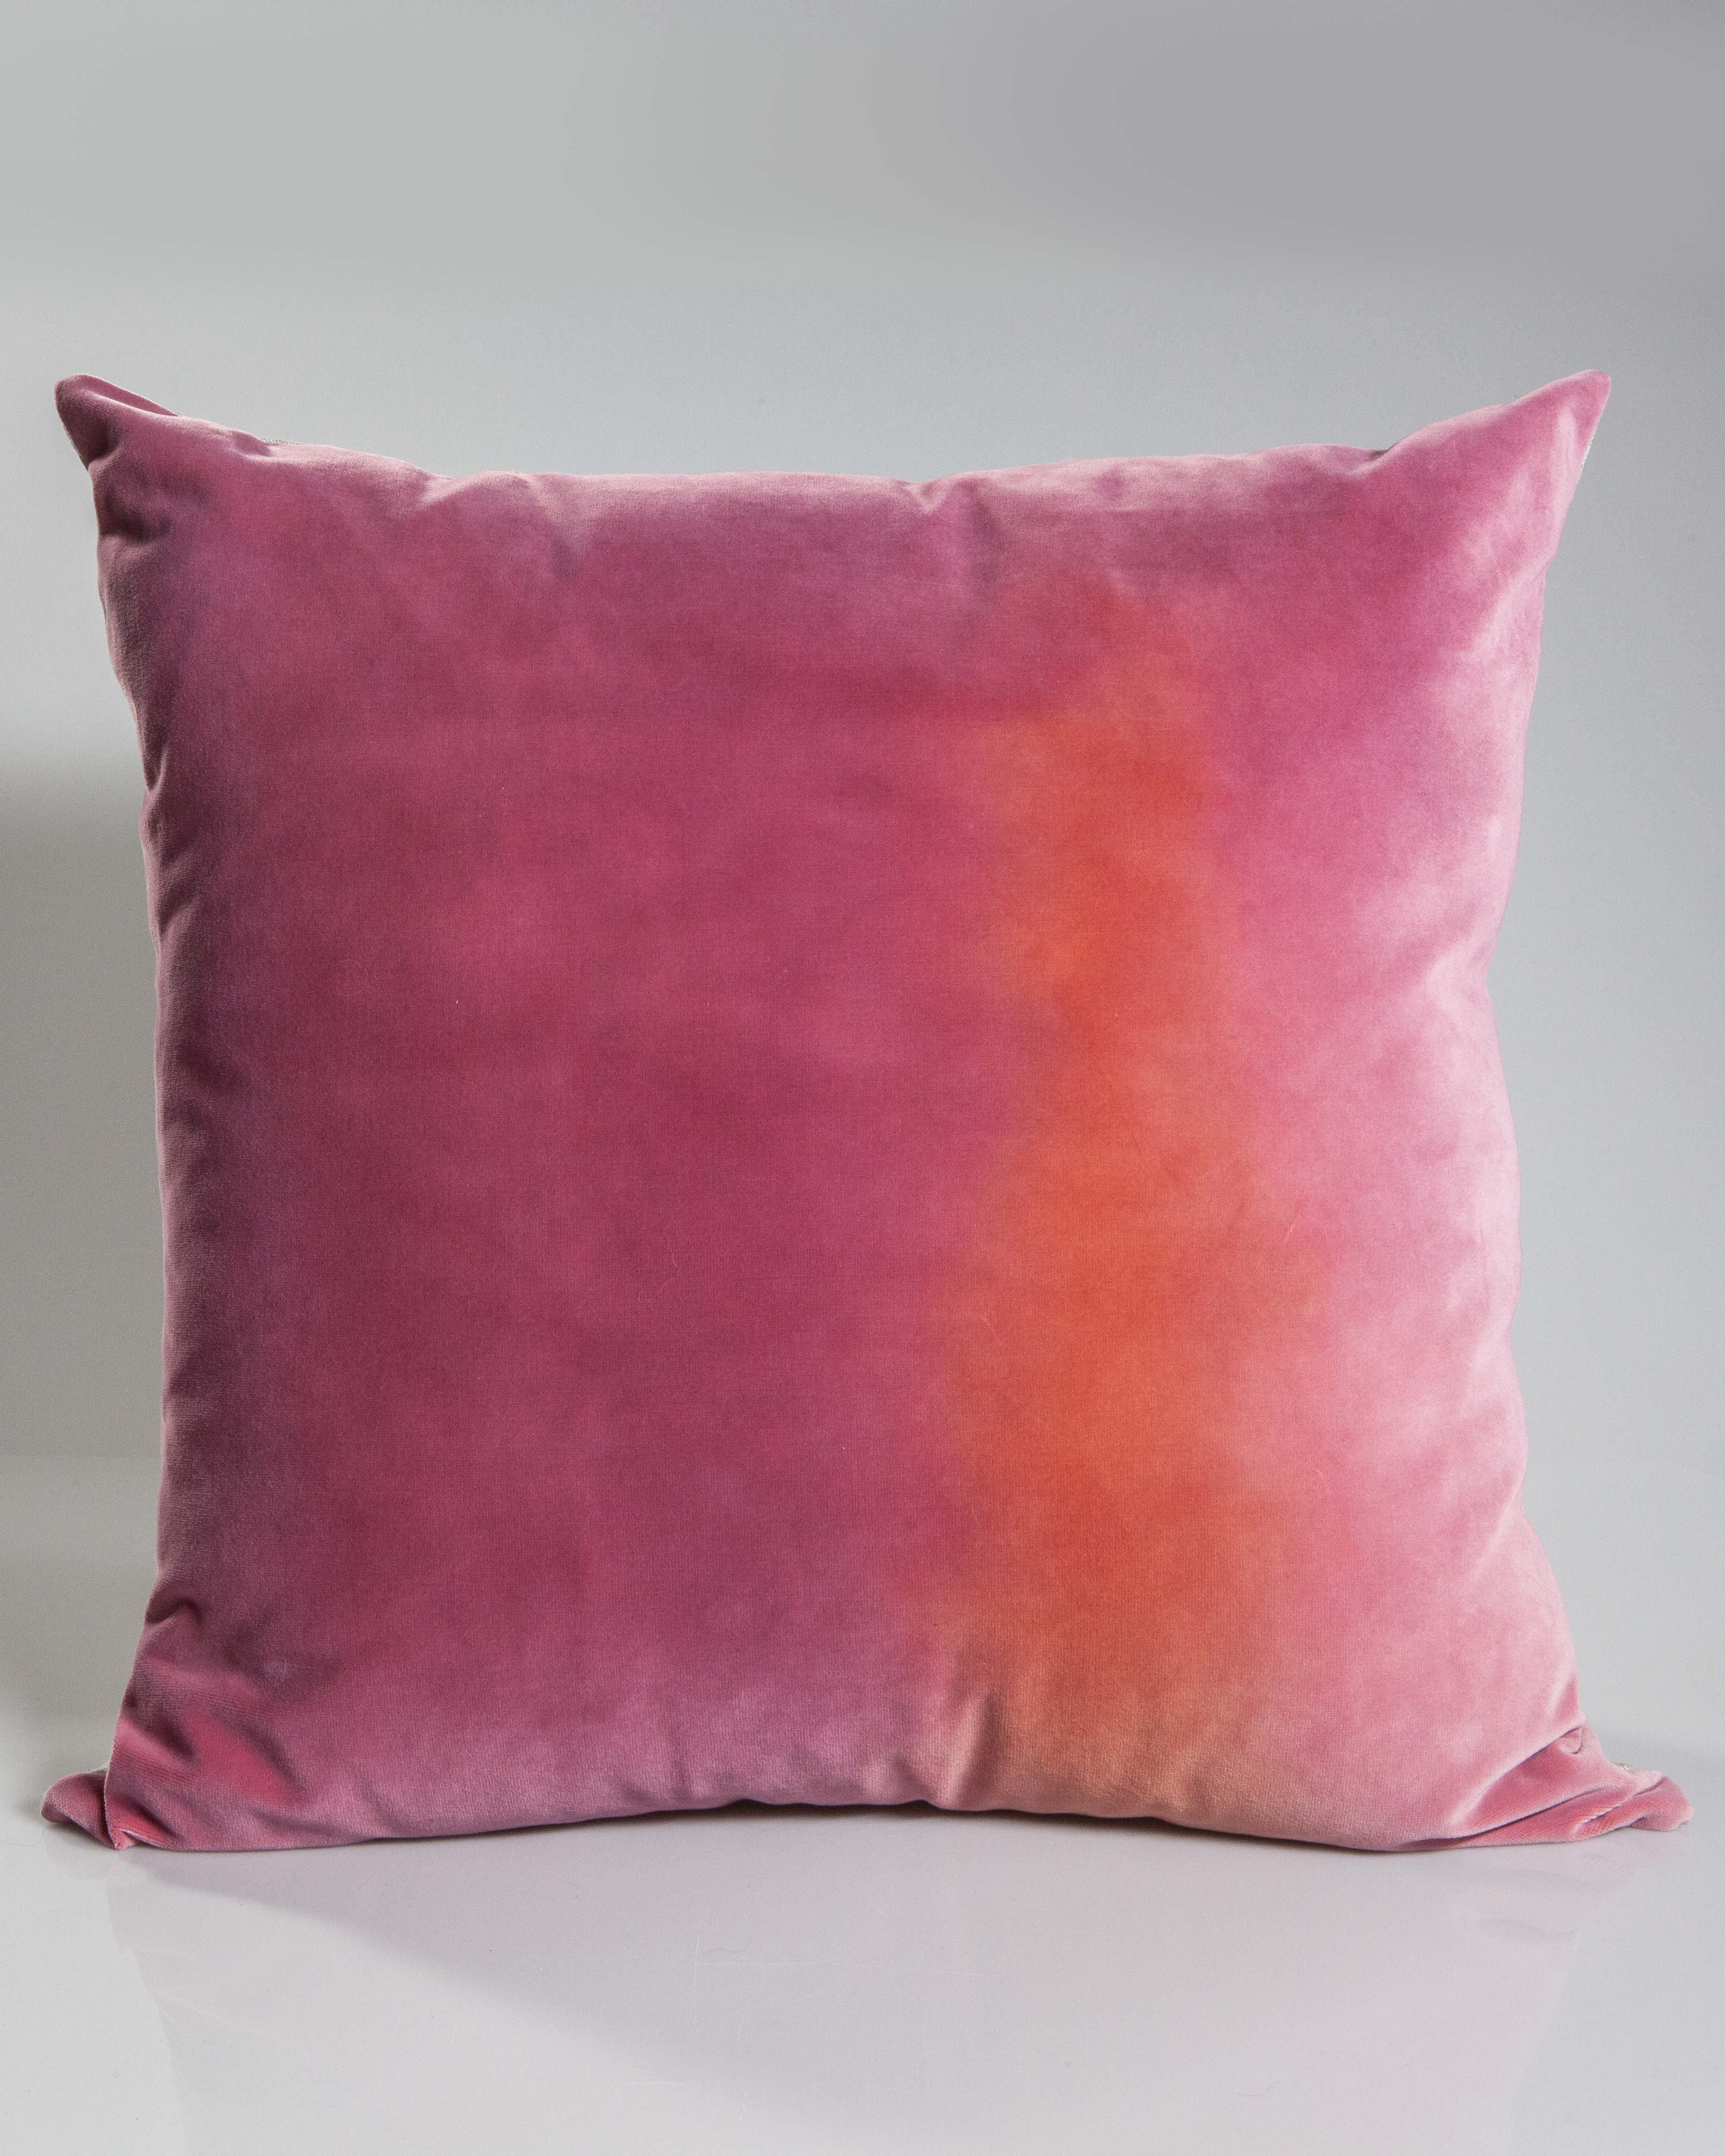 Hand-Painted Velvet Pillow - Pinks